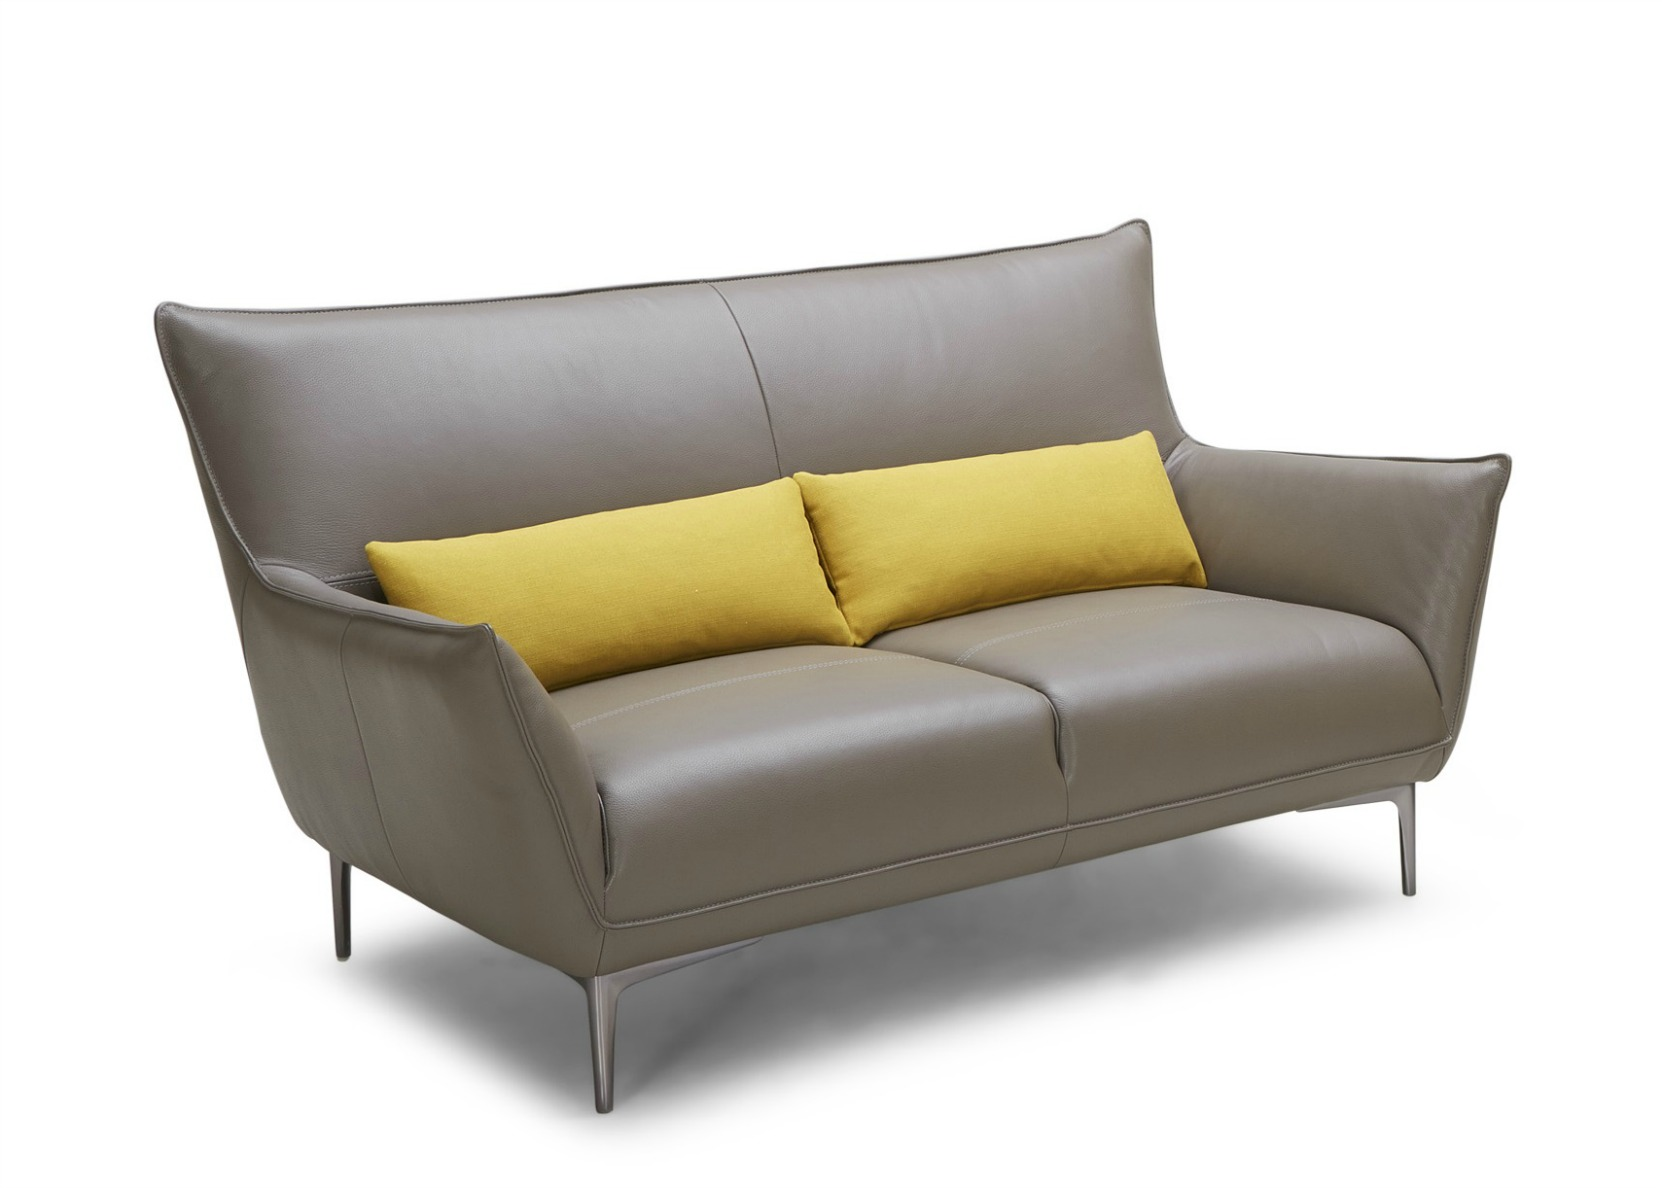 Iris Leather Sofa In Yellow And Brown Not Just Brown